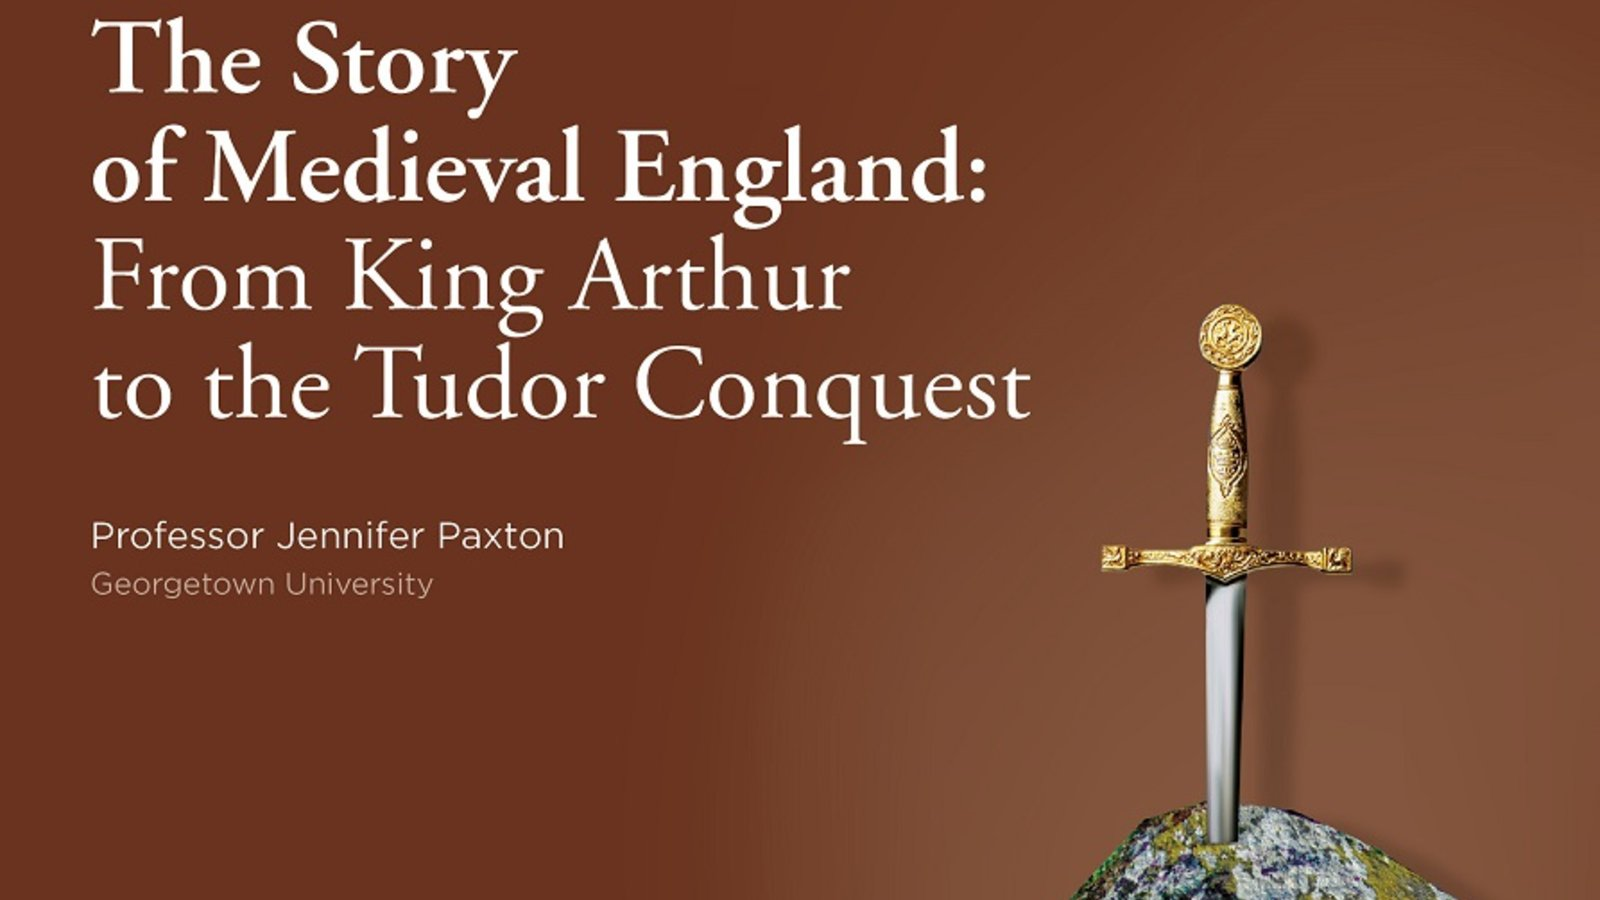 Story of Medieval England - From King Arthur to the Tudor Conquest